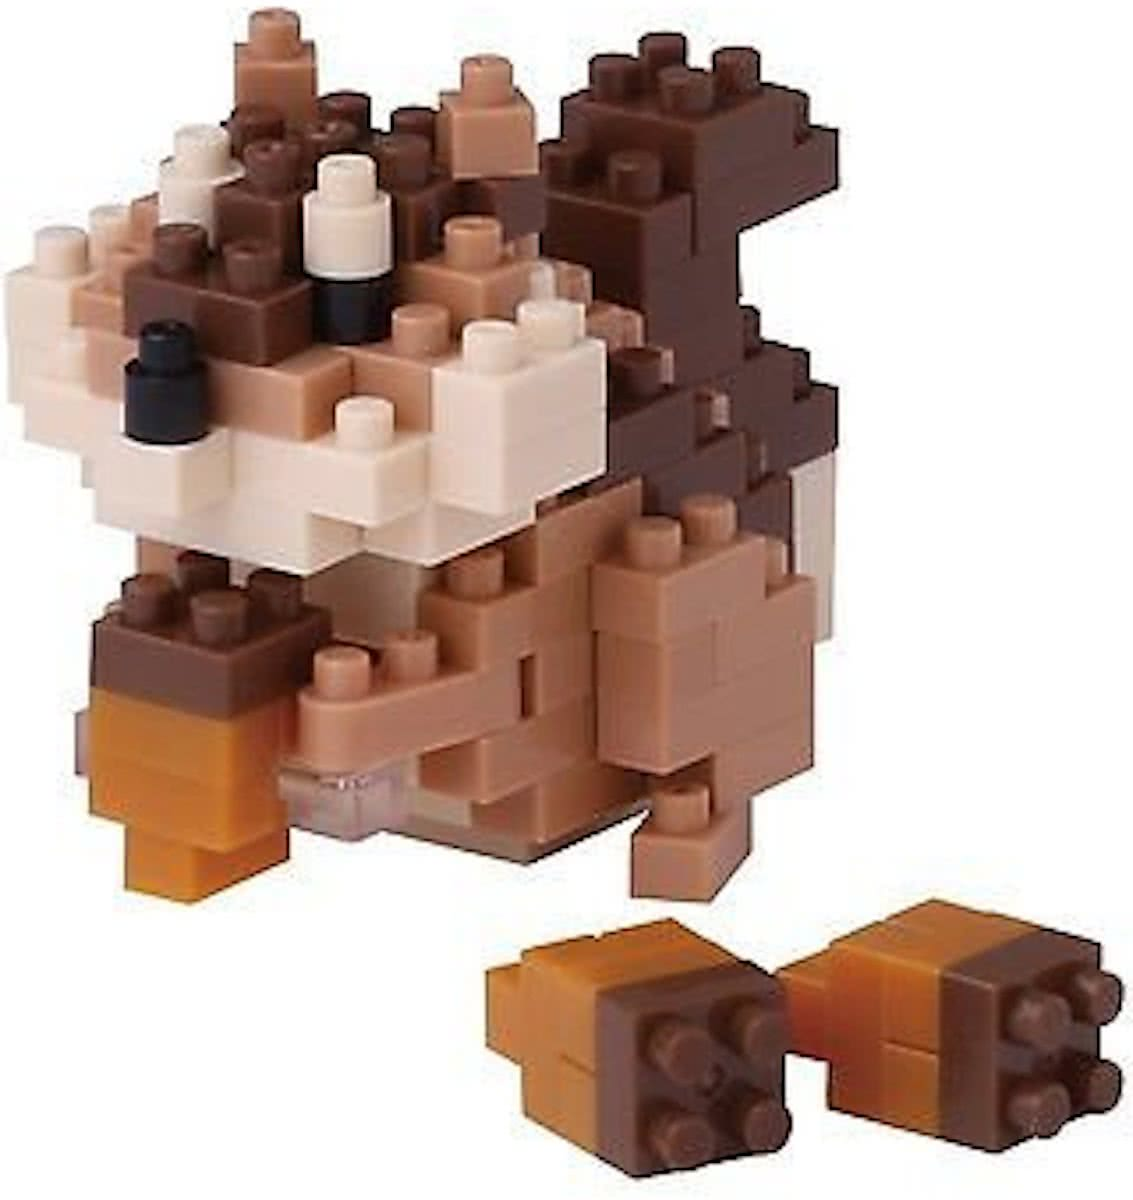 Nanoblock Squirrel NBC-178 by Kawada